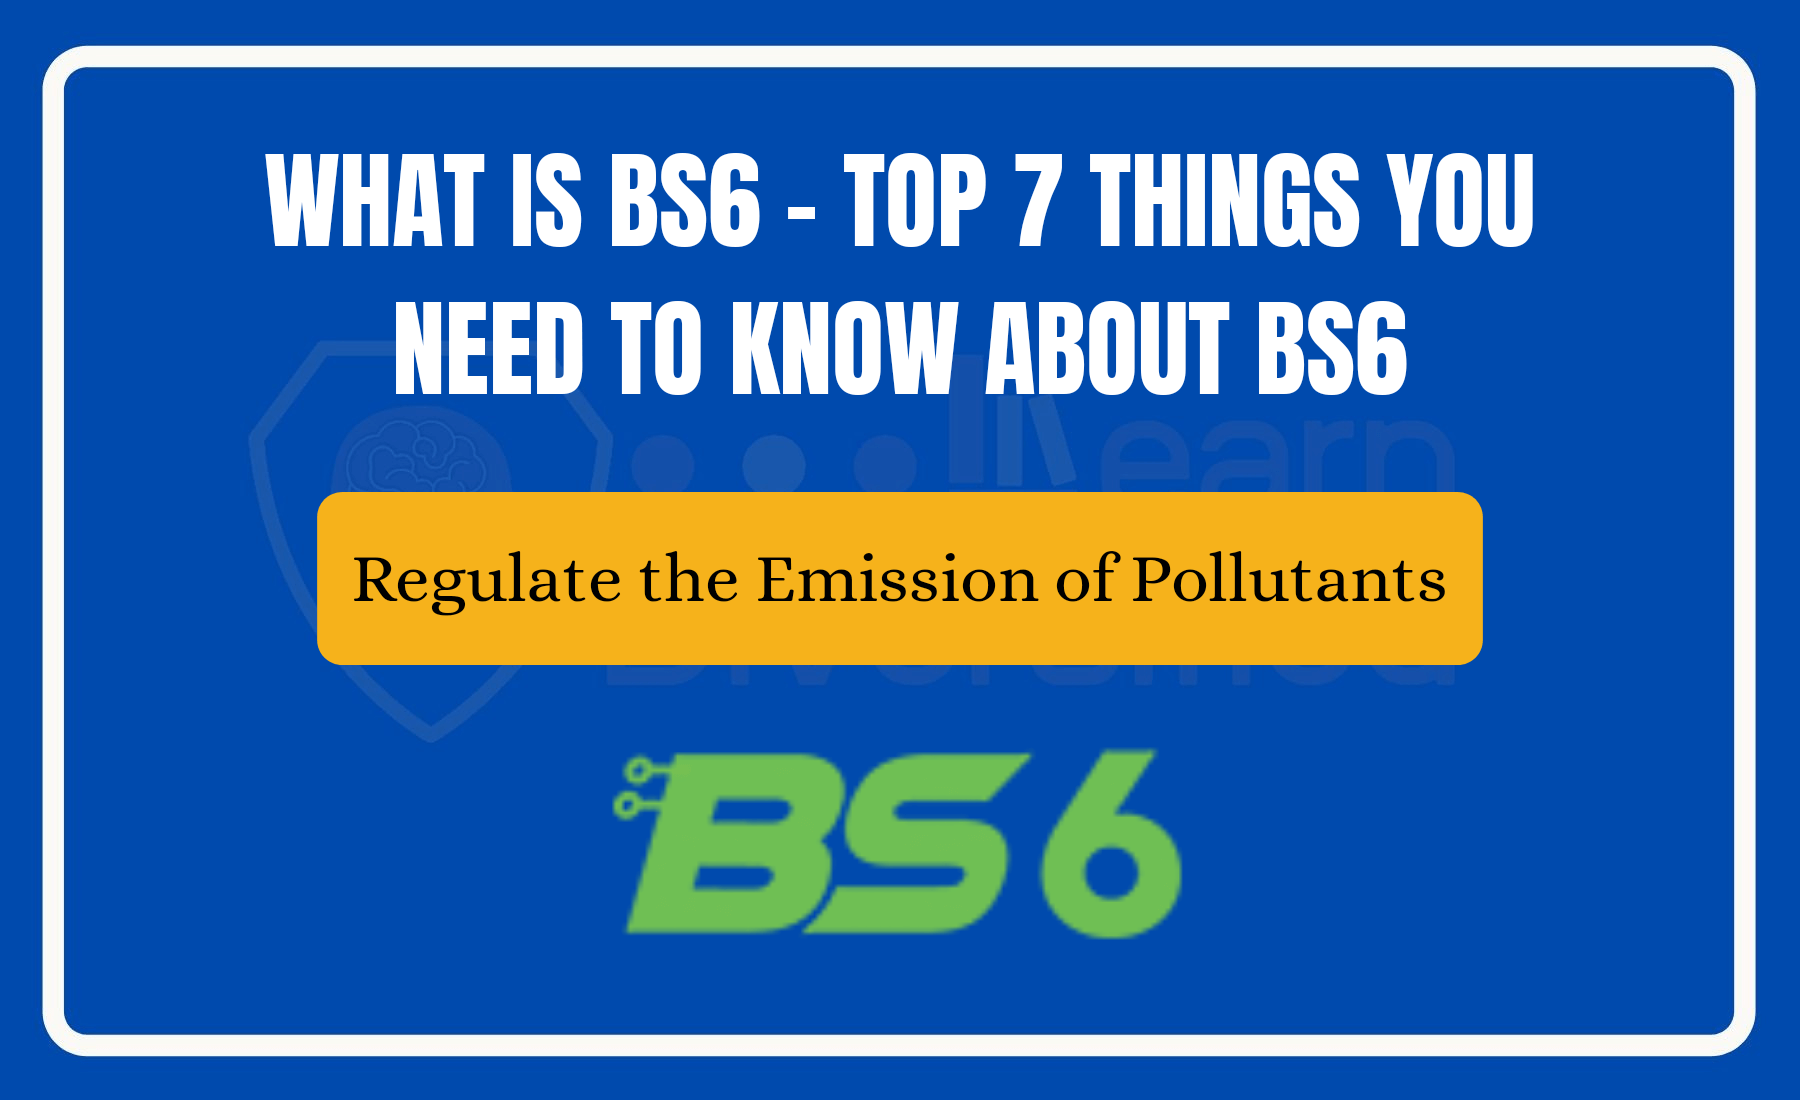 BS 6 engines